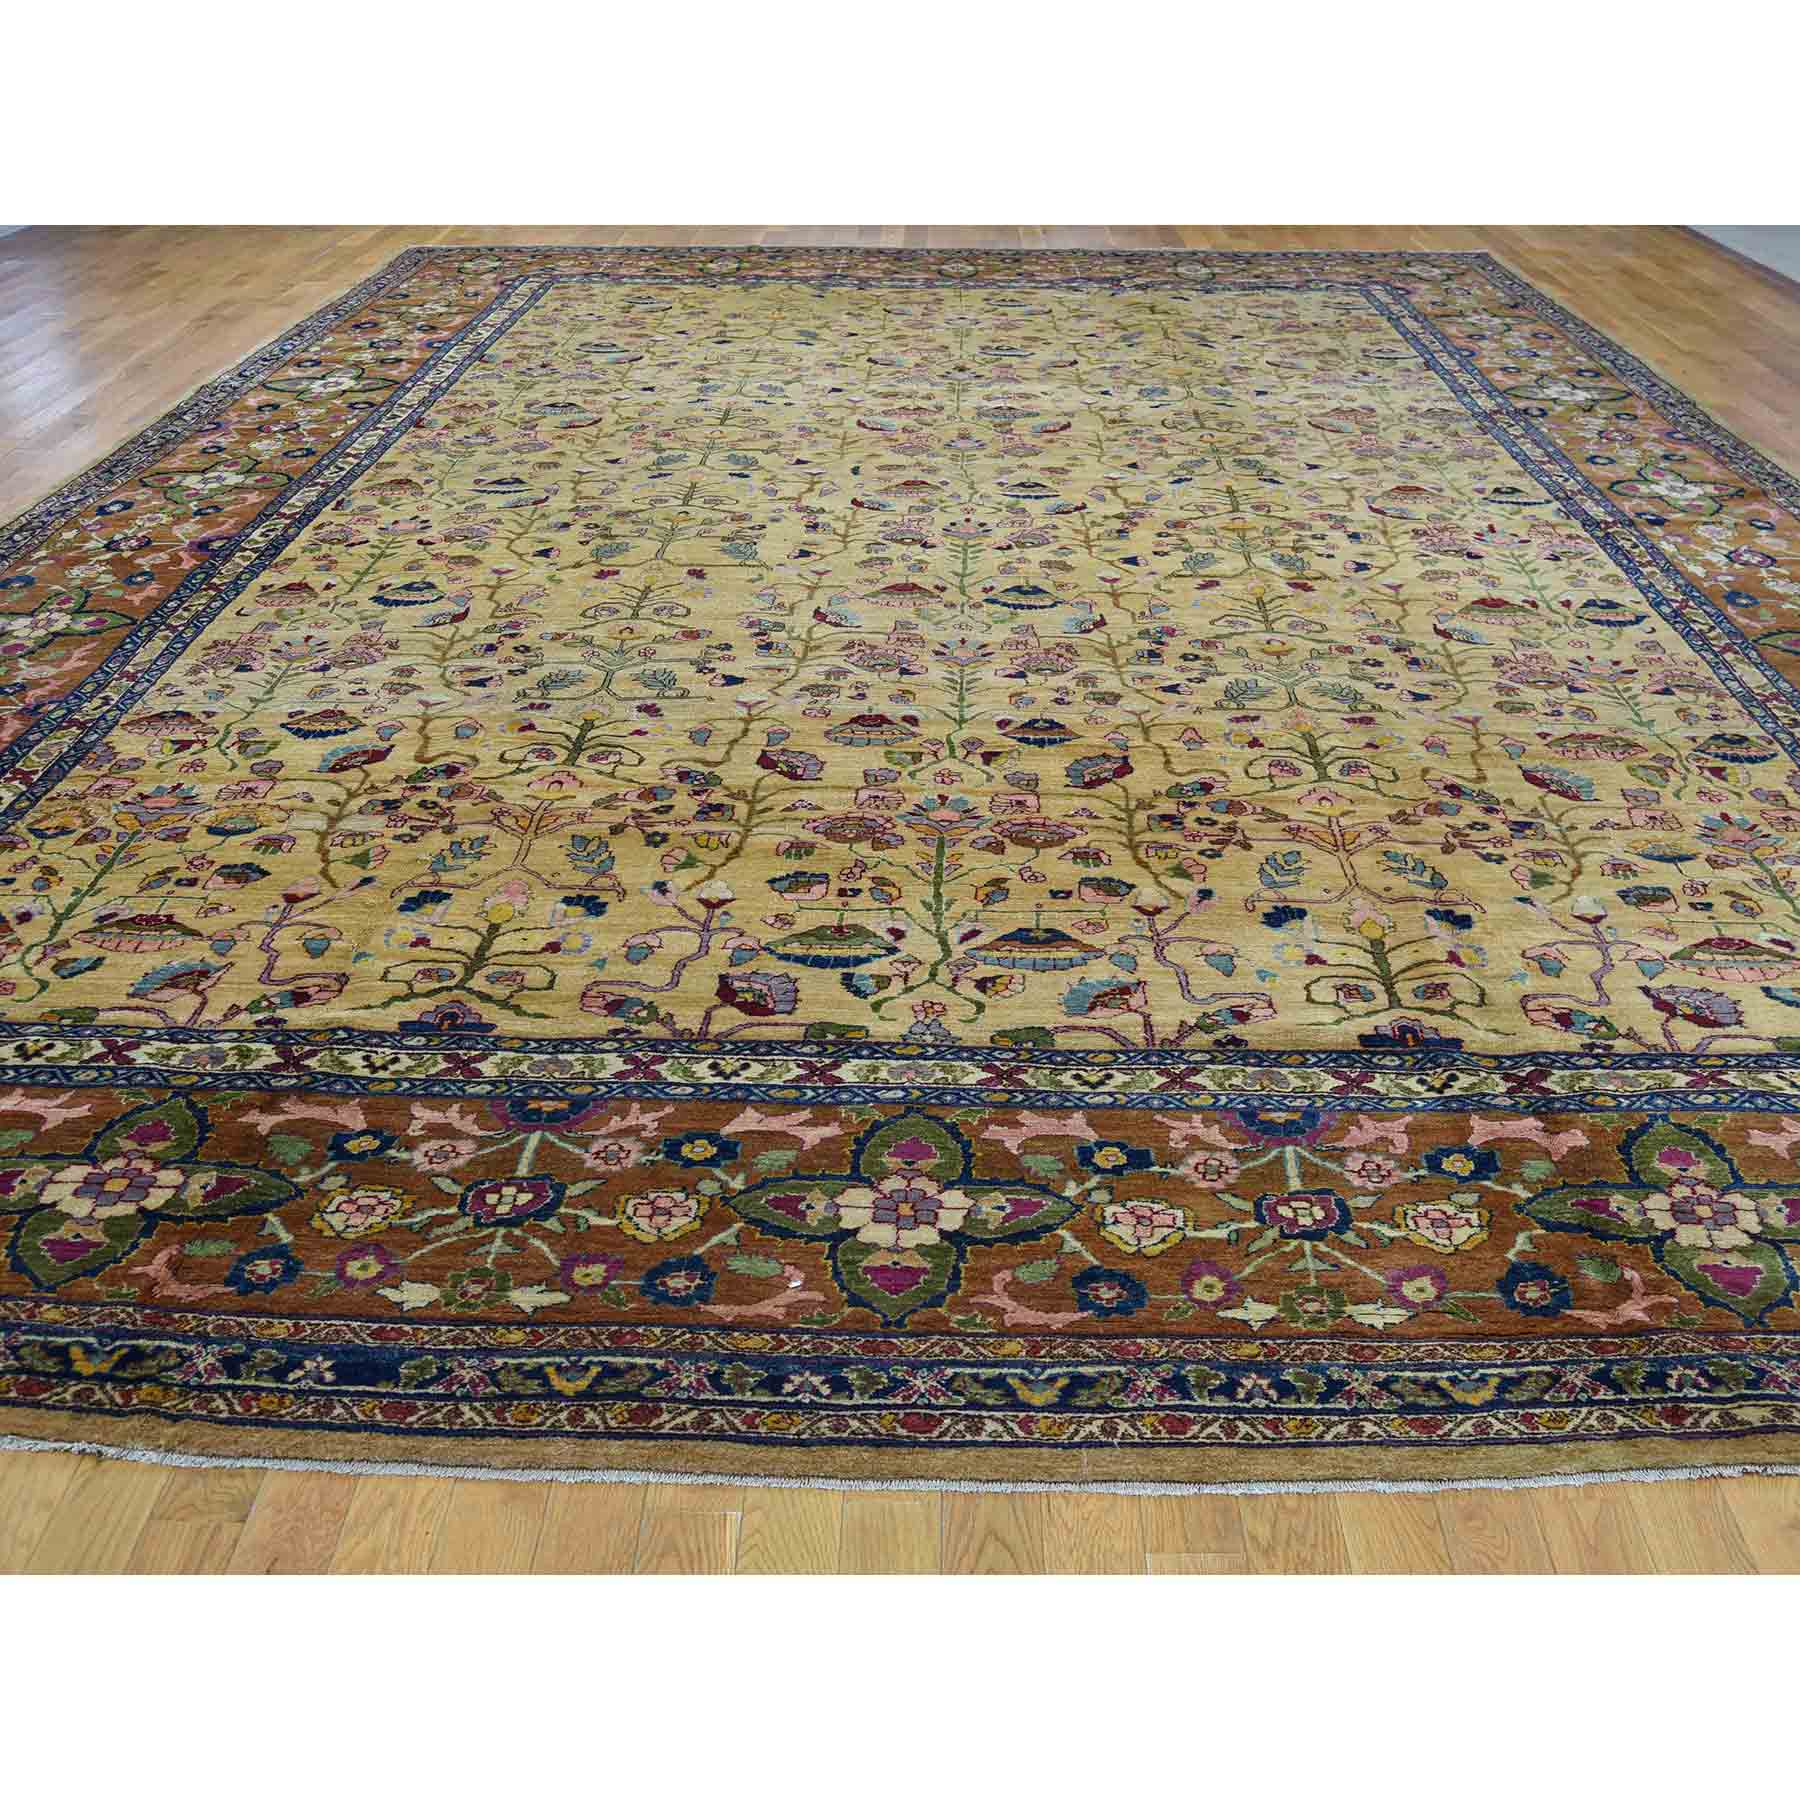 Antique-Hand-Knotted-Rug-200295